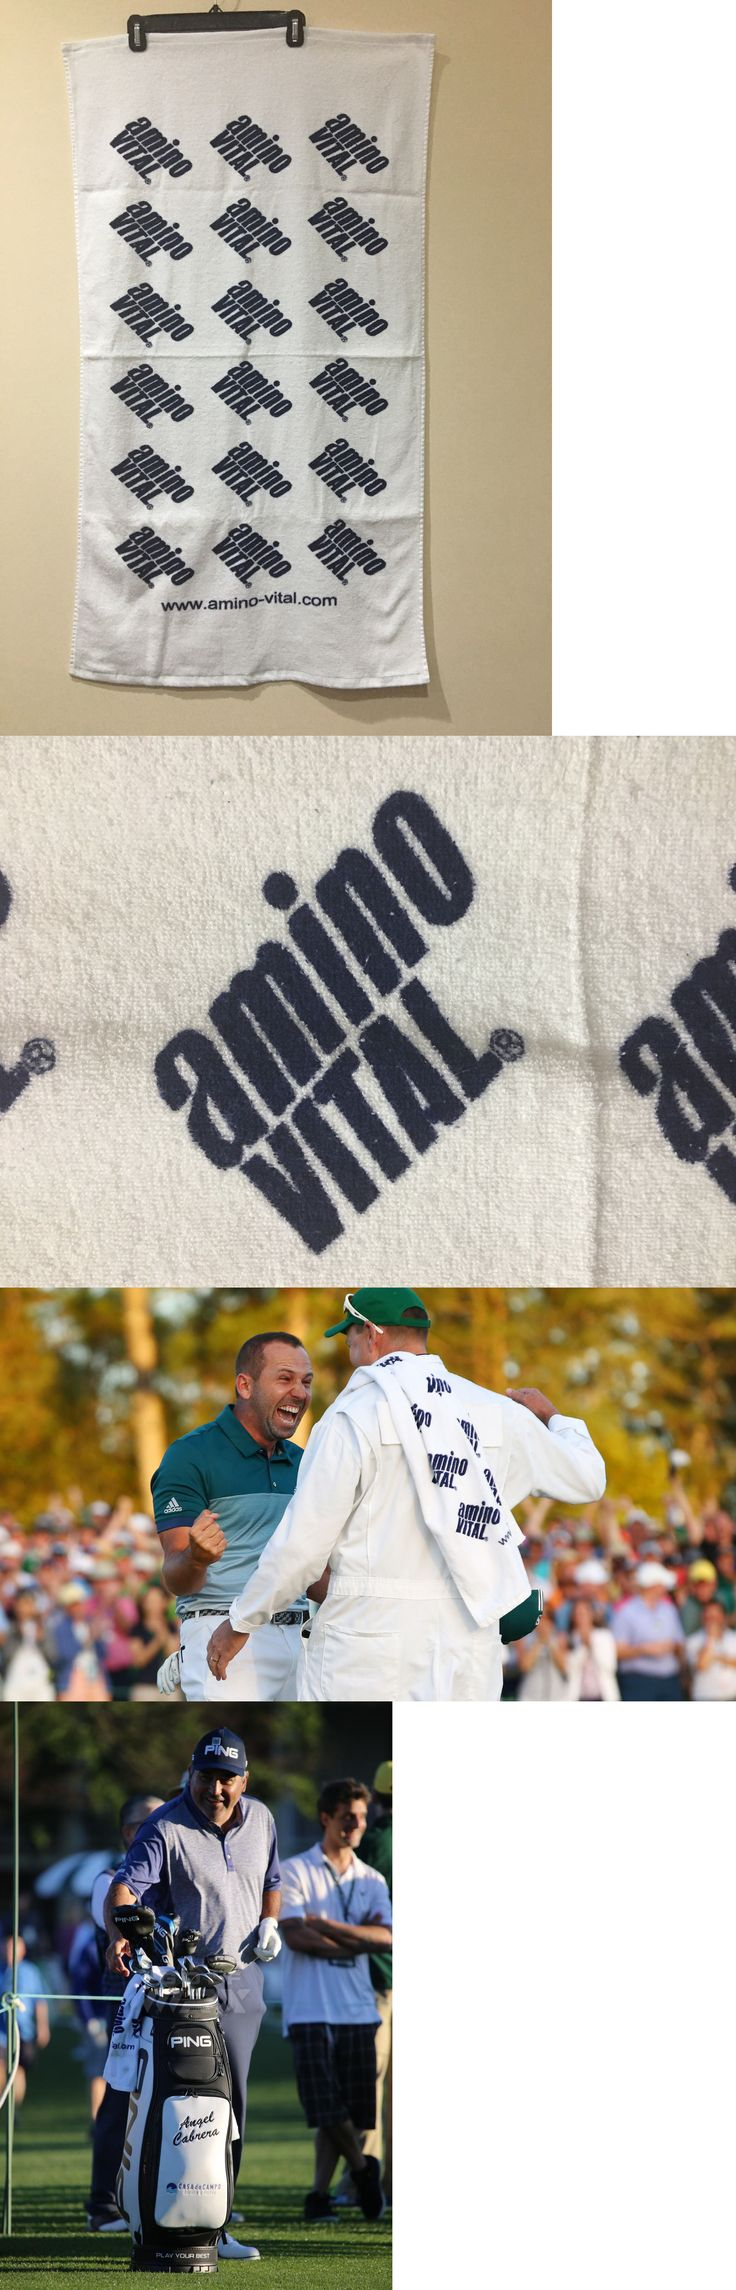 Golf Towels 18932: Brand New Amino Vital Pga Tour Issue Golf Towel 24 X42 -> BUY IT NOW ONLY: $35 on eBay!